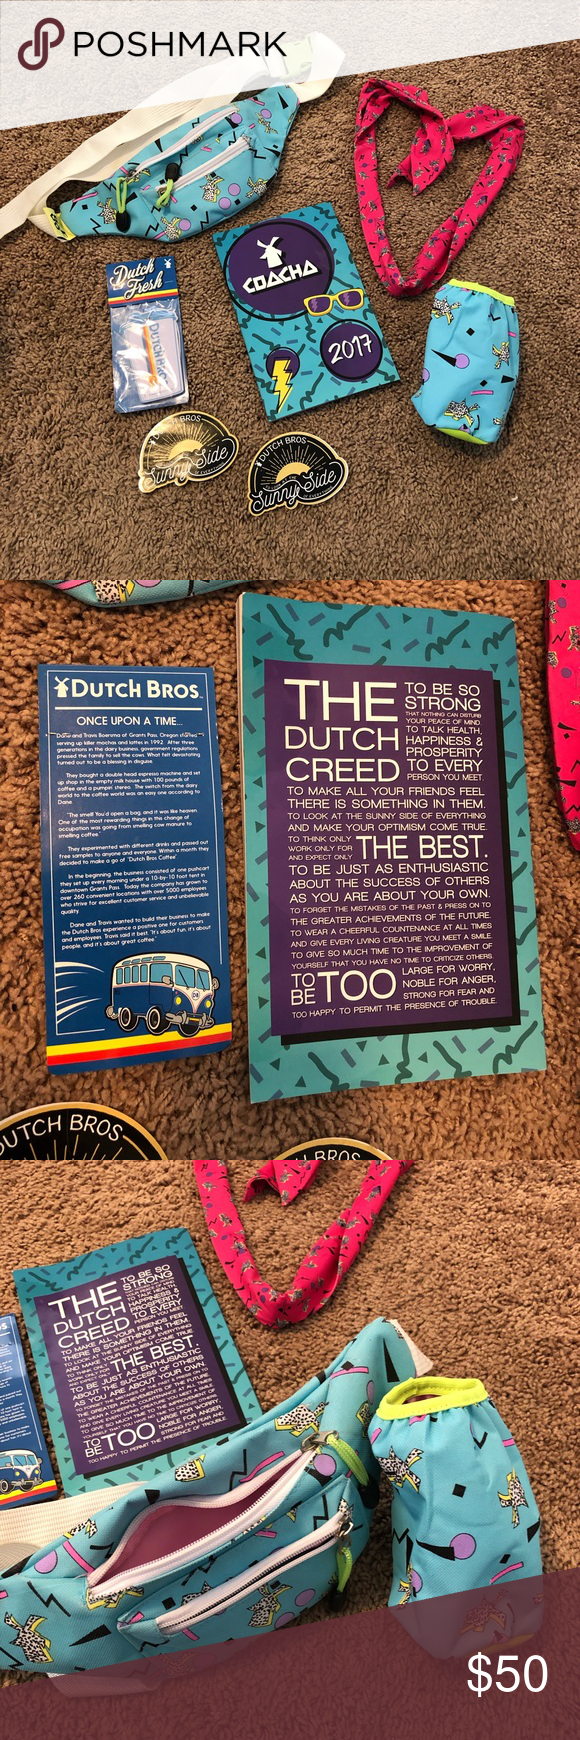 Dutch Bros Coach Merch Dutch Bros 2017 Coach Merch! Super rare and limited edition, you could only get these if you were invited to the 2917 Coacha event. Includes a Dutch Bros fanny pack, water bottle case, notebook, scarf/arm wrap +some extra stickers and an air freshener! The notebook has some notes from when Travis Boersma (one of the brothers who founded Dutch Bros) spoke to us at the event! Dutch Bros Accessories #dutchbros Dutch Bros Coach Merch Dutch Bros 2017 Coach Merch! Super rare and #dutchbros